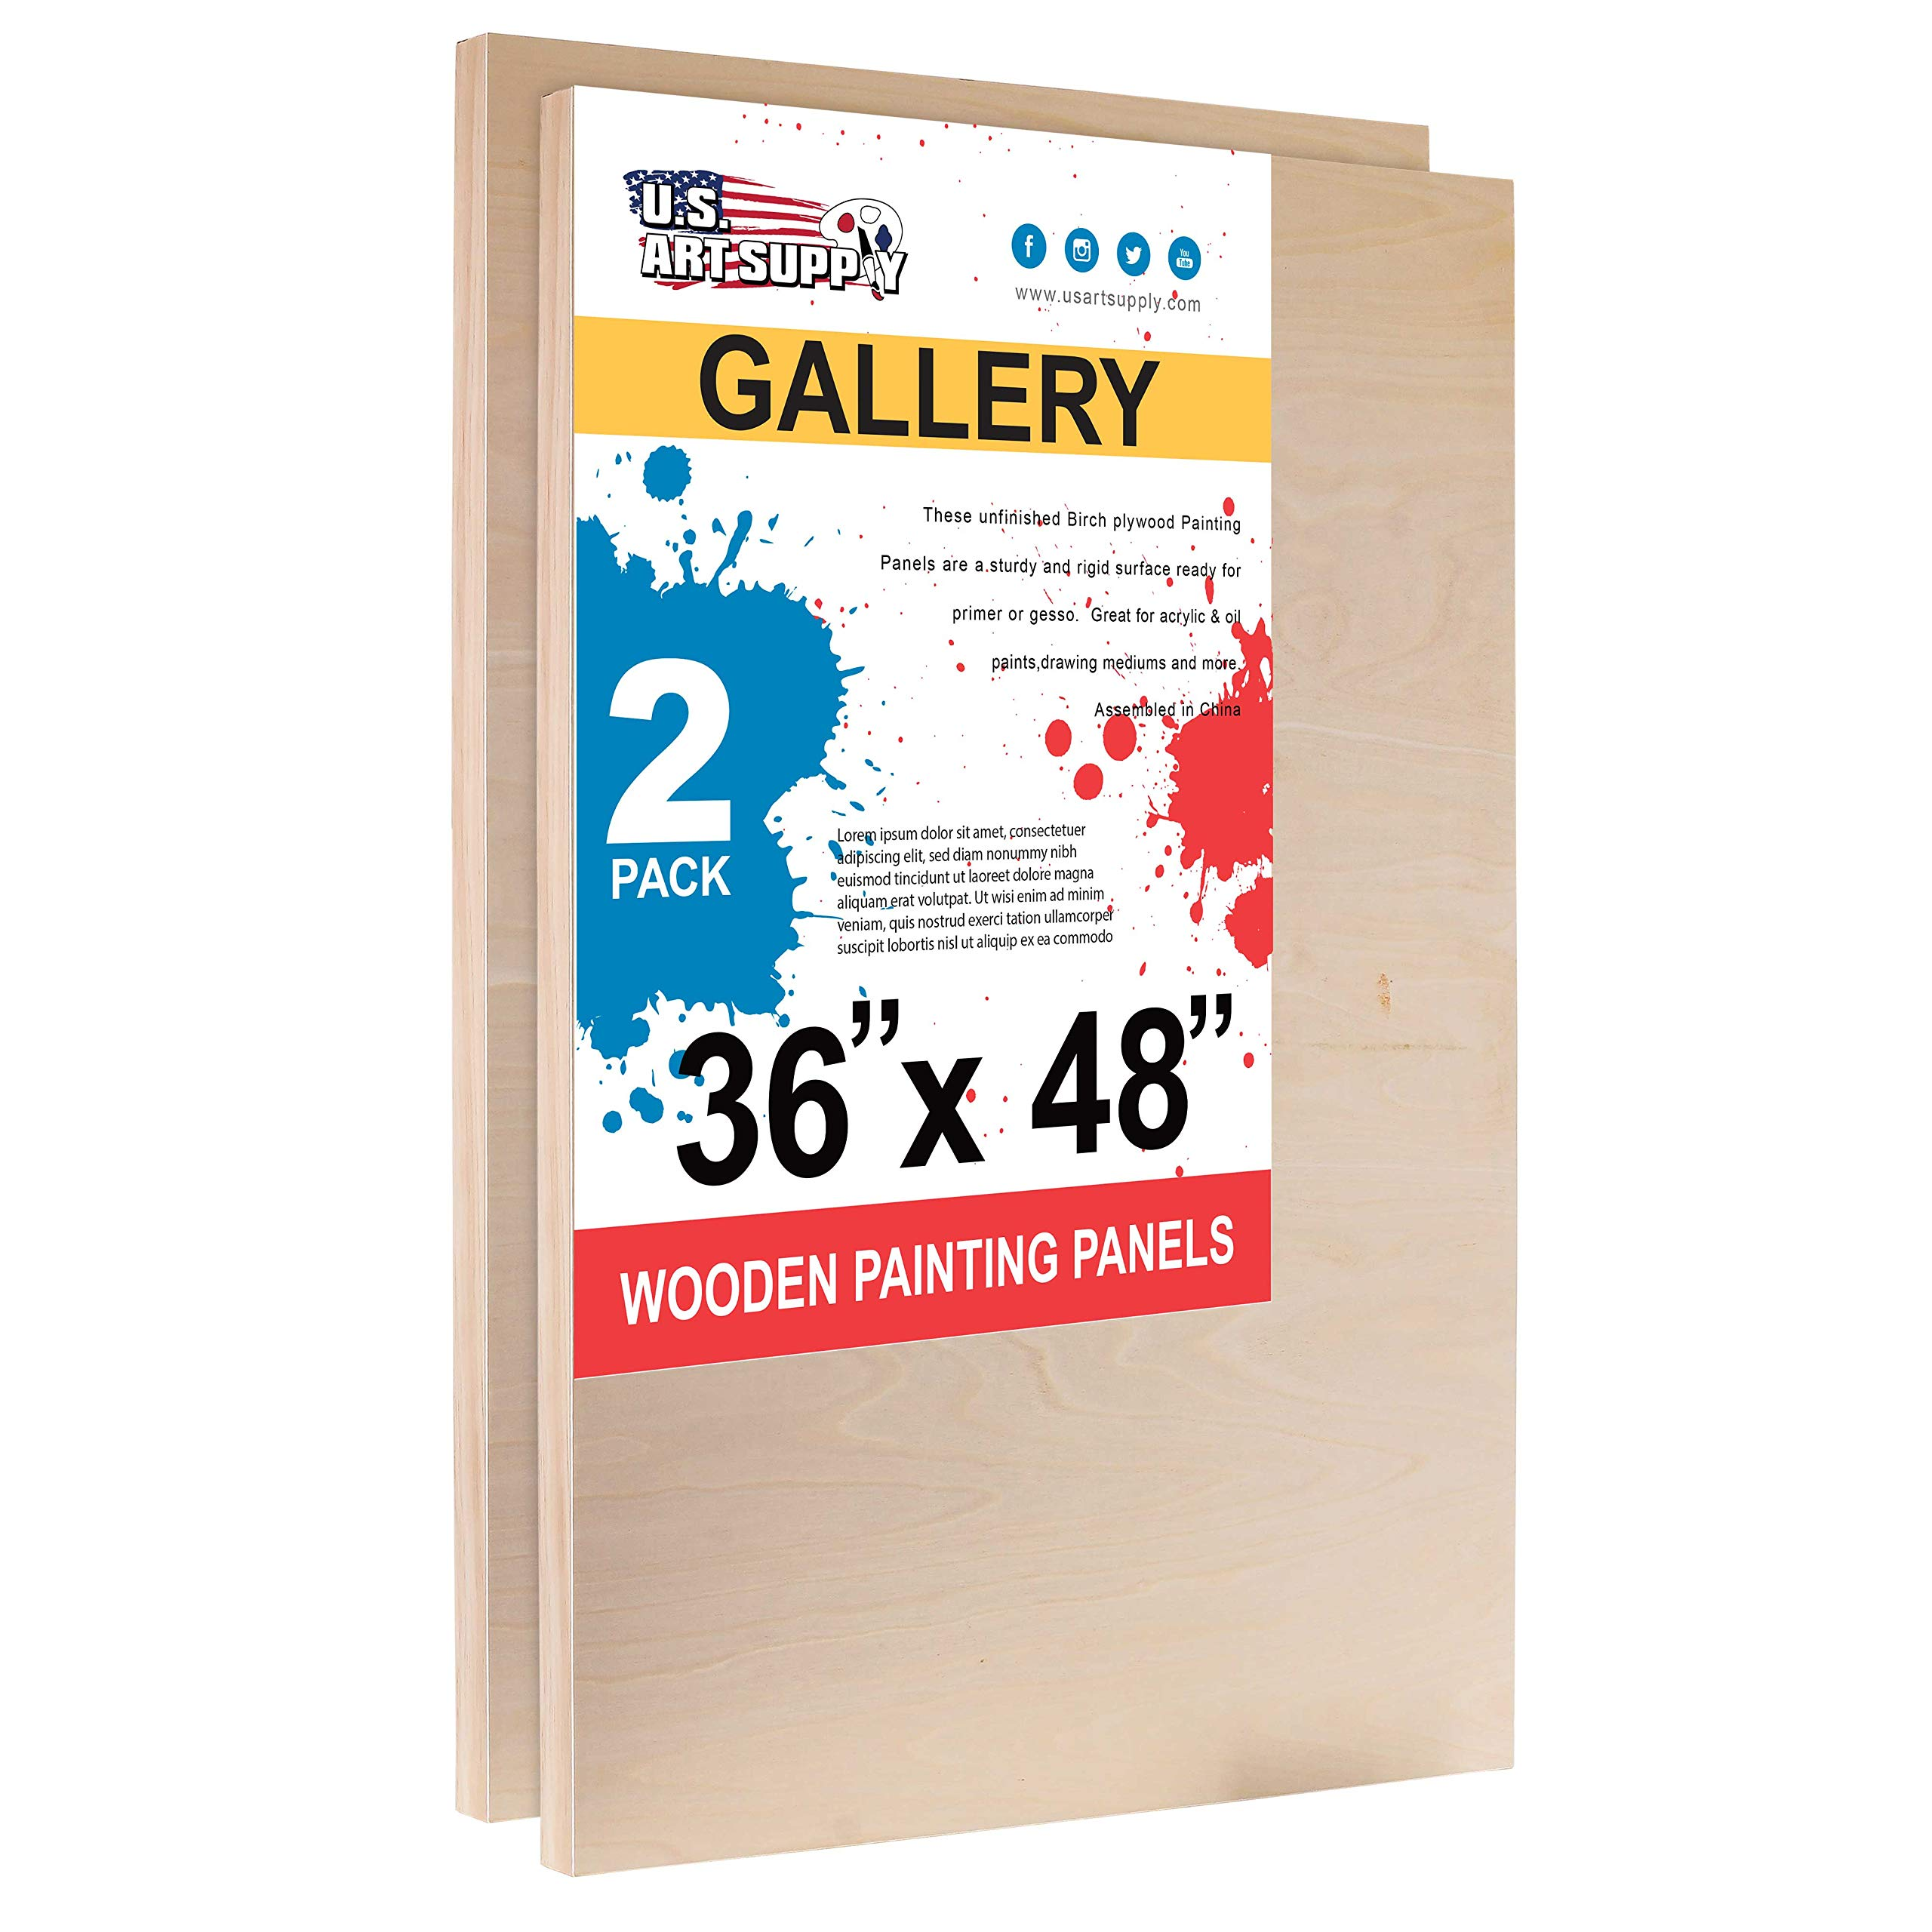 U.S. Art Supply 36'' x 48'' Birch Wood Paint Pouring Panel Boards, Gallery 1-1/2'' Deep Cradle (Pack of 2) - Artist Depth Wooden Wall Canvases - Painting Mixed-Media Craft, Acrylic, Oil, Epoxy Pouring by U.S. Art Supply